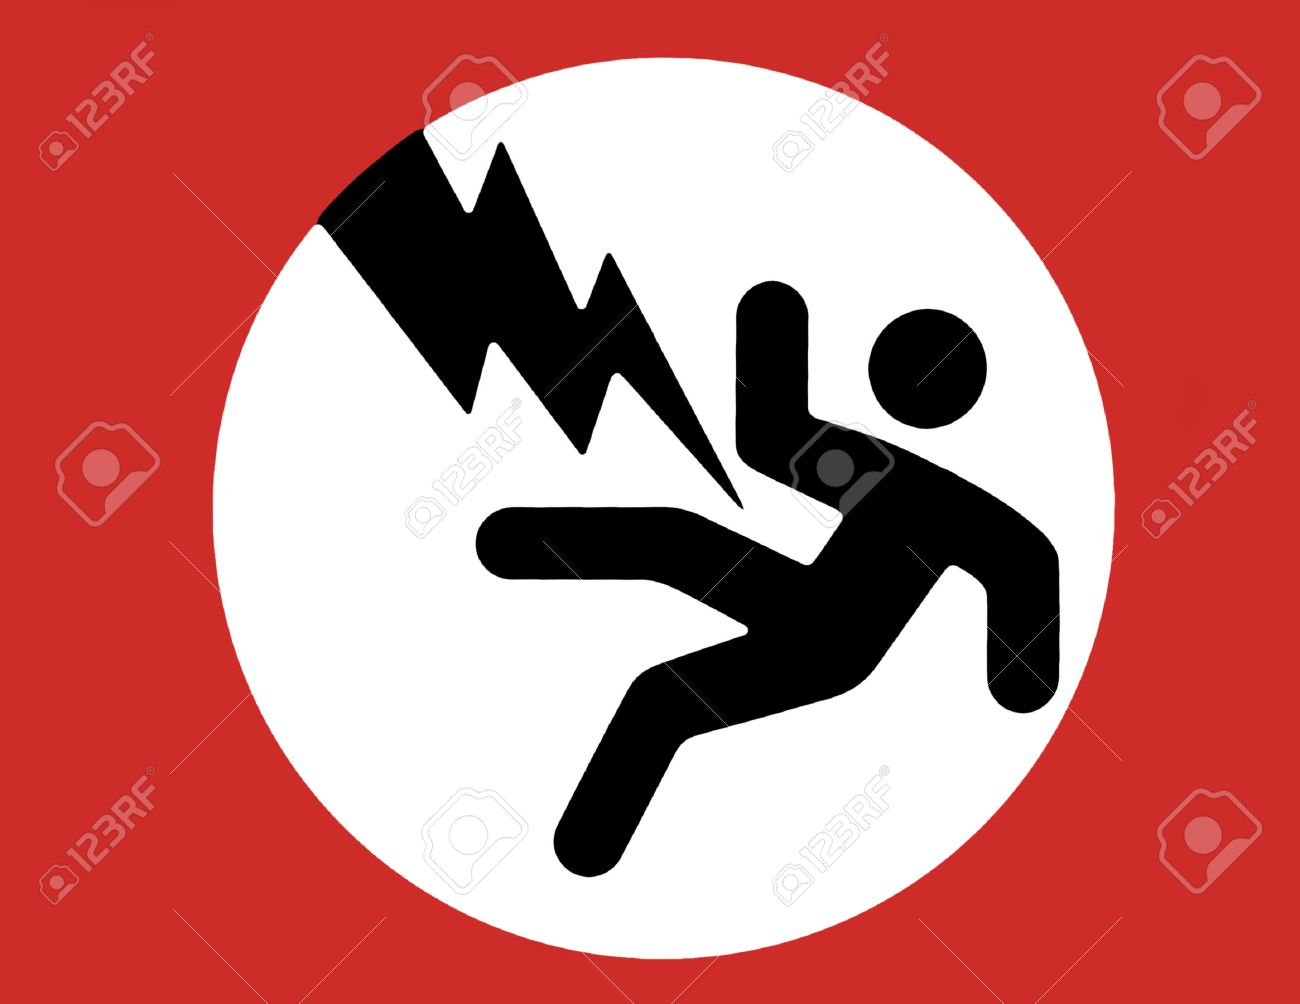 Electric Shock Warning Sign - Black Man, Red Boarder, White ...